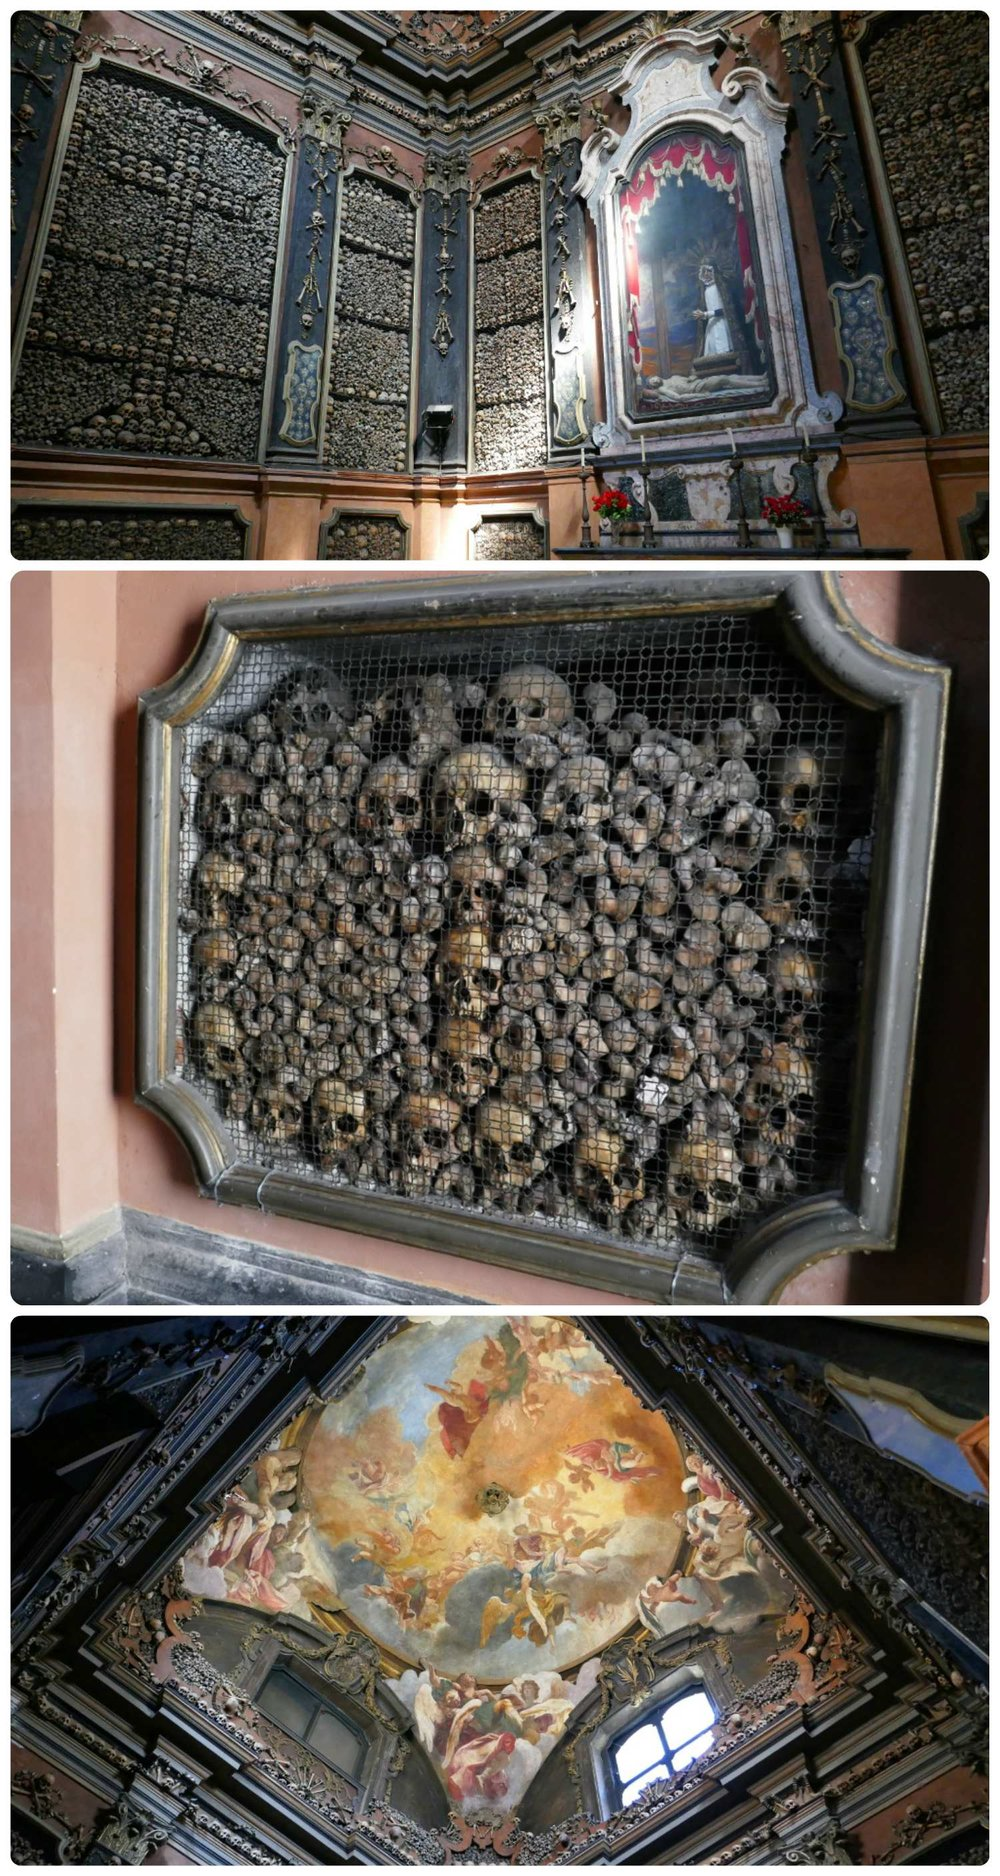 All images are of the San Bernardino alle Ossa. Top to bottom: the walls and alter of the small chapel, a panel on the side wall filled with skulls and bones, the painting on the dome in the chapel.